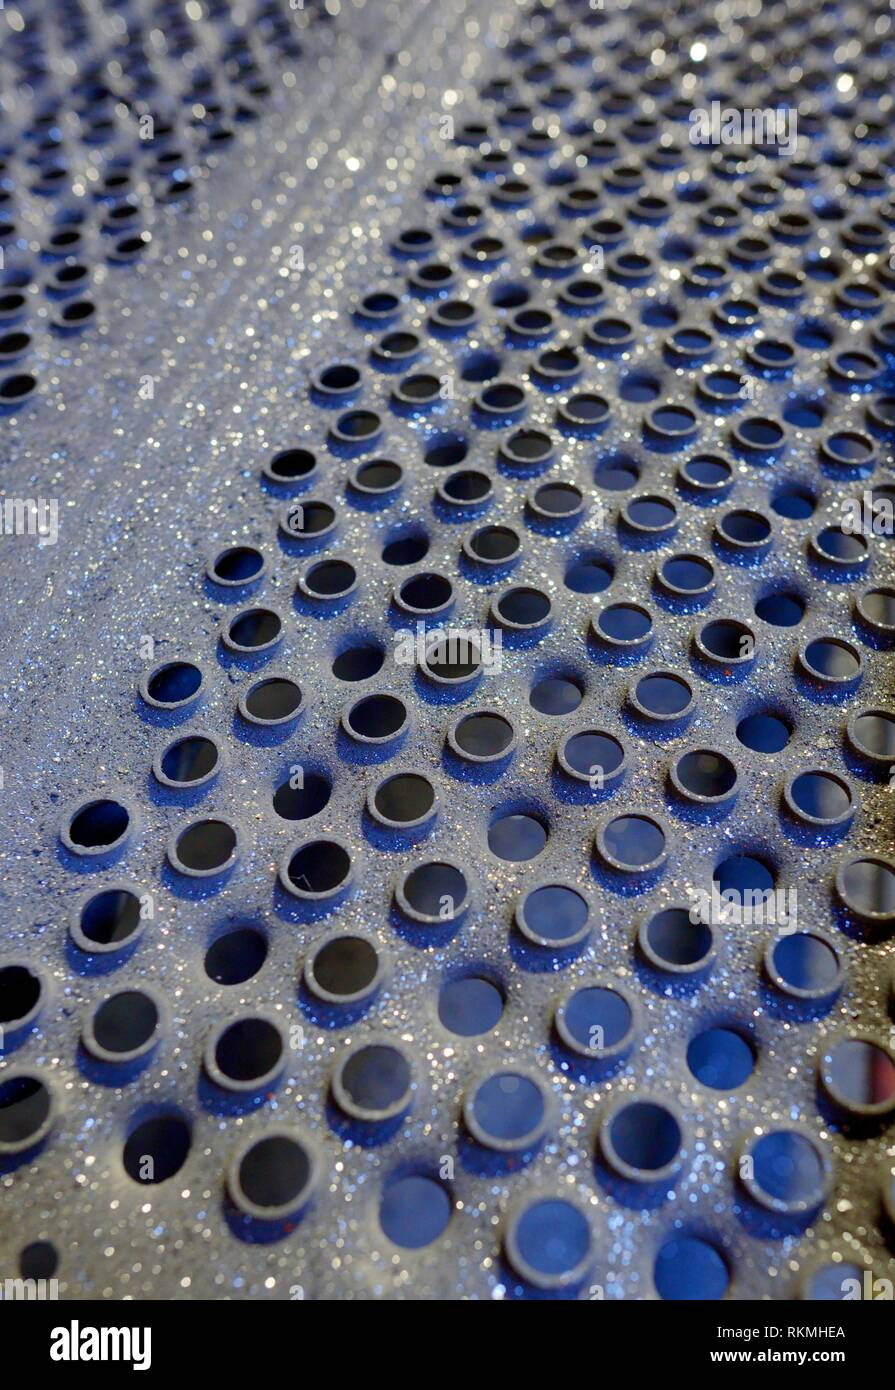 Details of perforated industrial steel background. - Stock Image